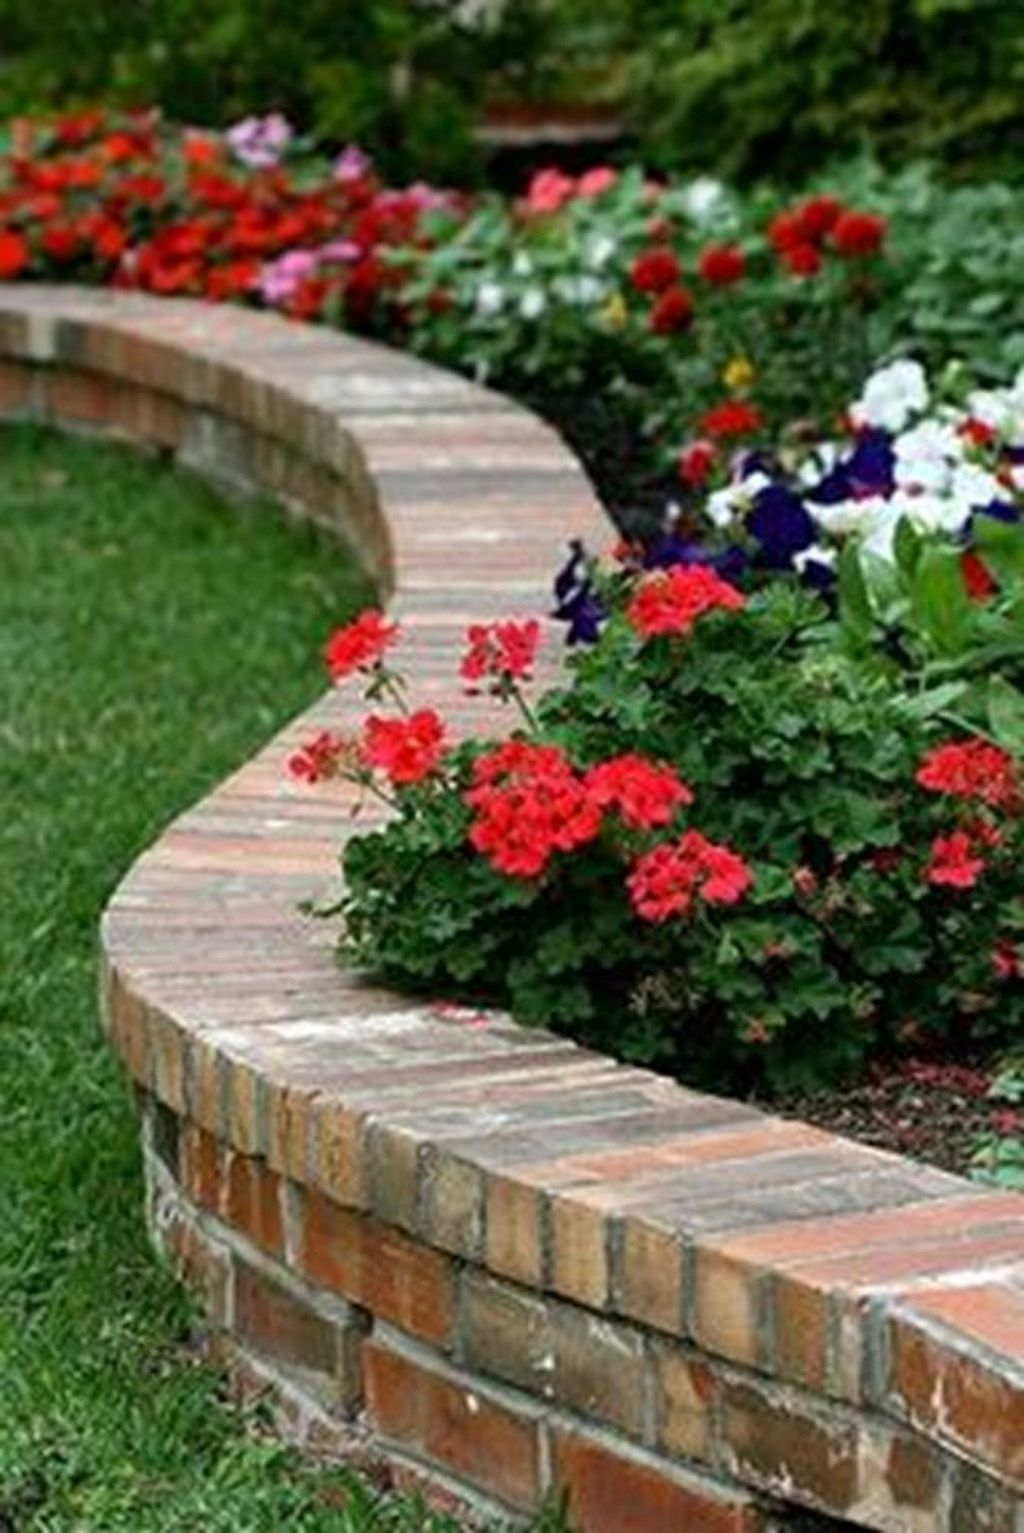 brick projects ideas to make your garden awesome brick projects